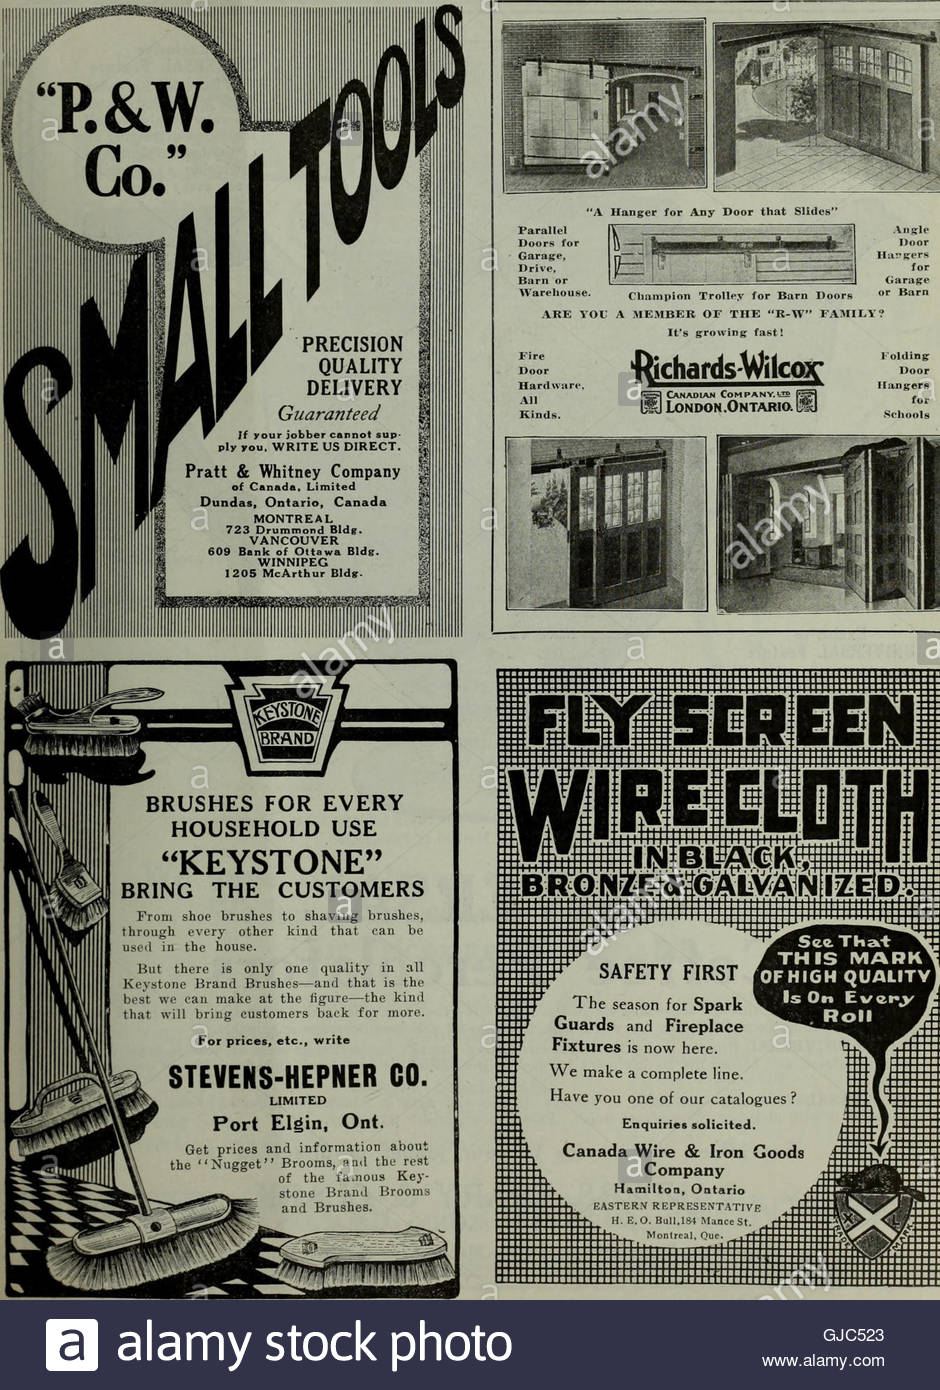 Fireplace Warehouse Etc Unique Hardware Merchandising January March 1916 1916 Stock